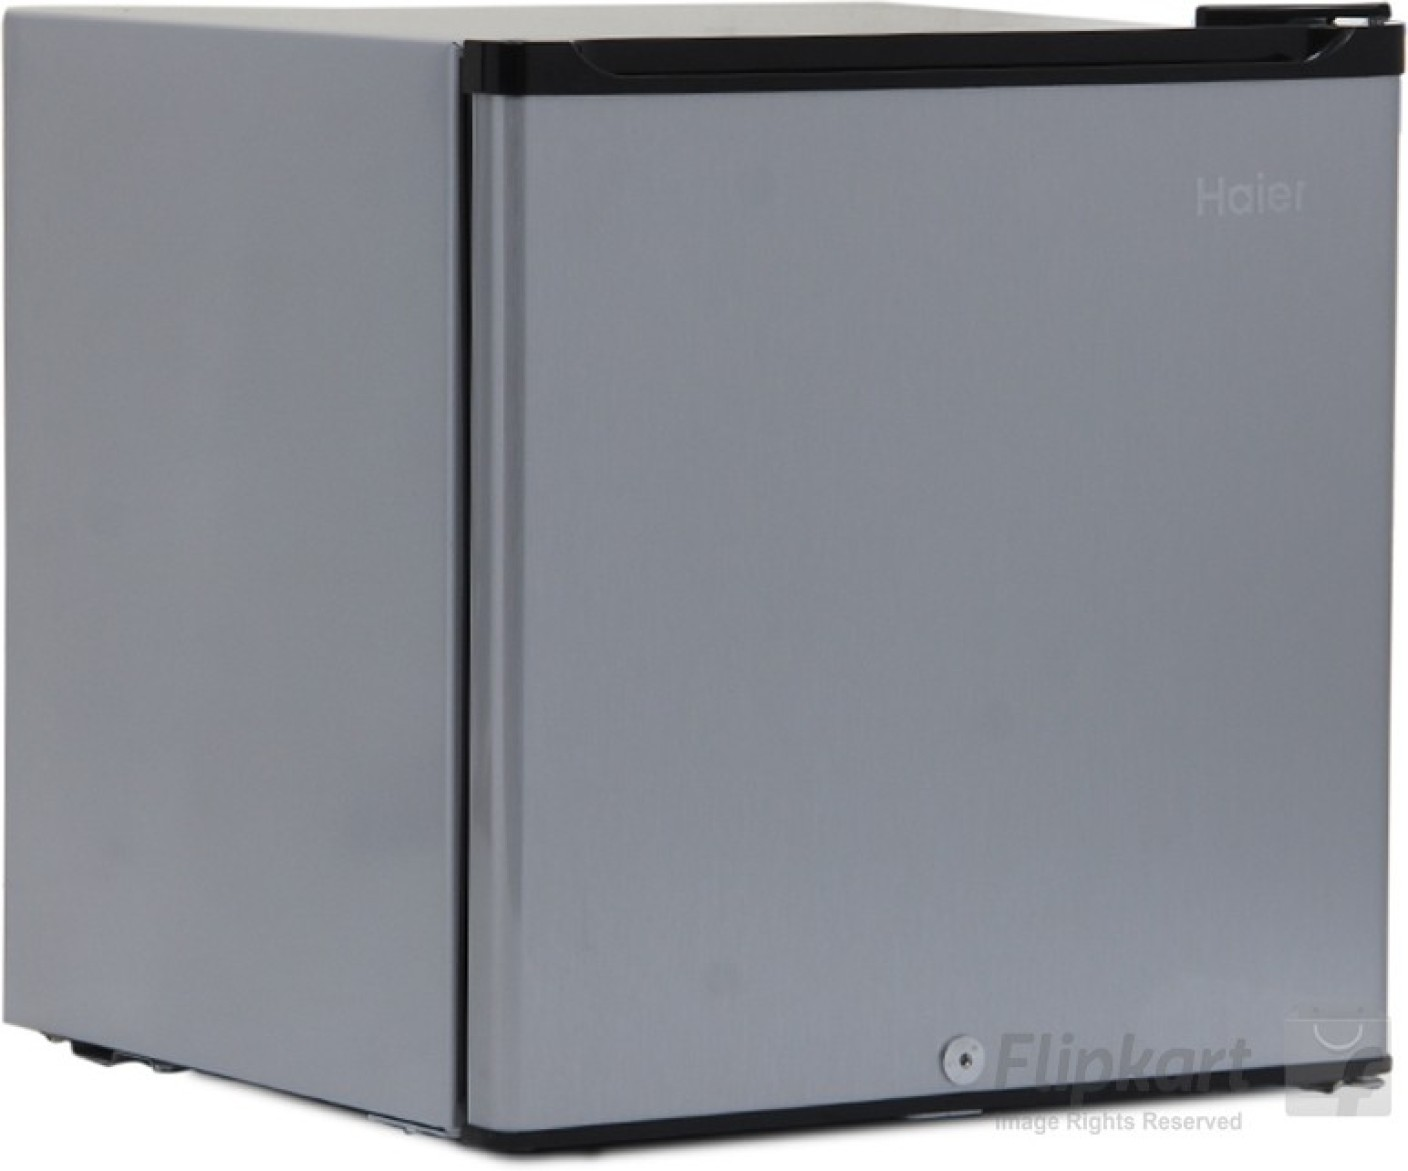 haier mini fridge parts. add to cart haier mini fridge parts